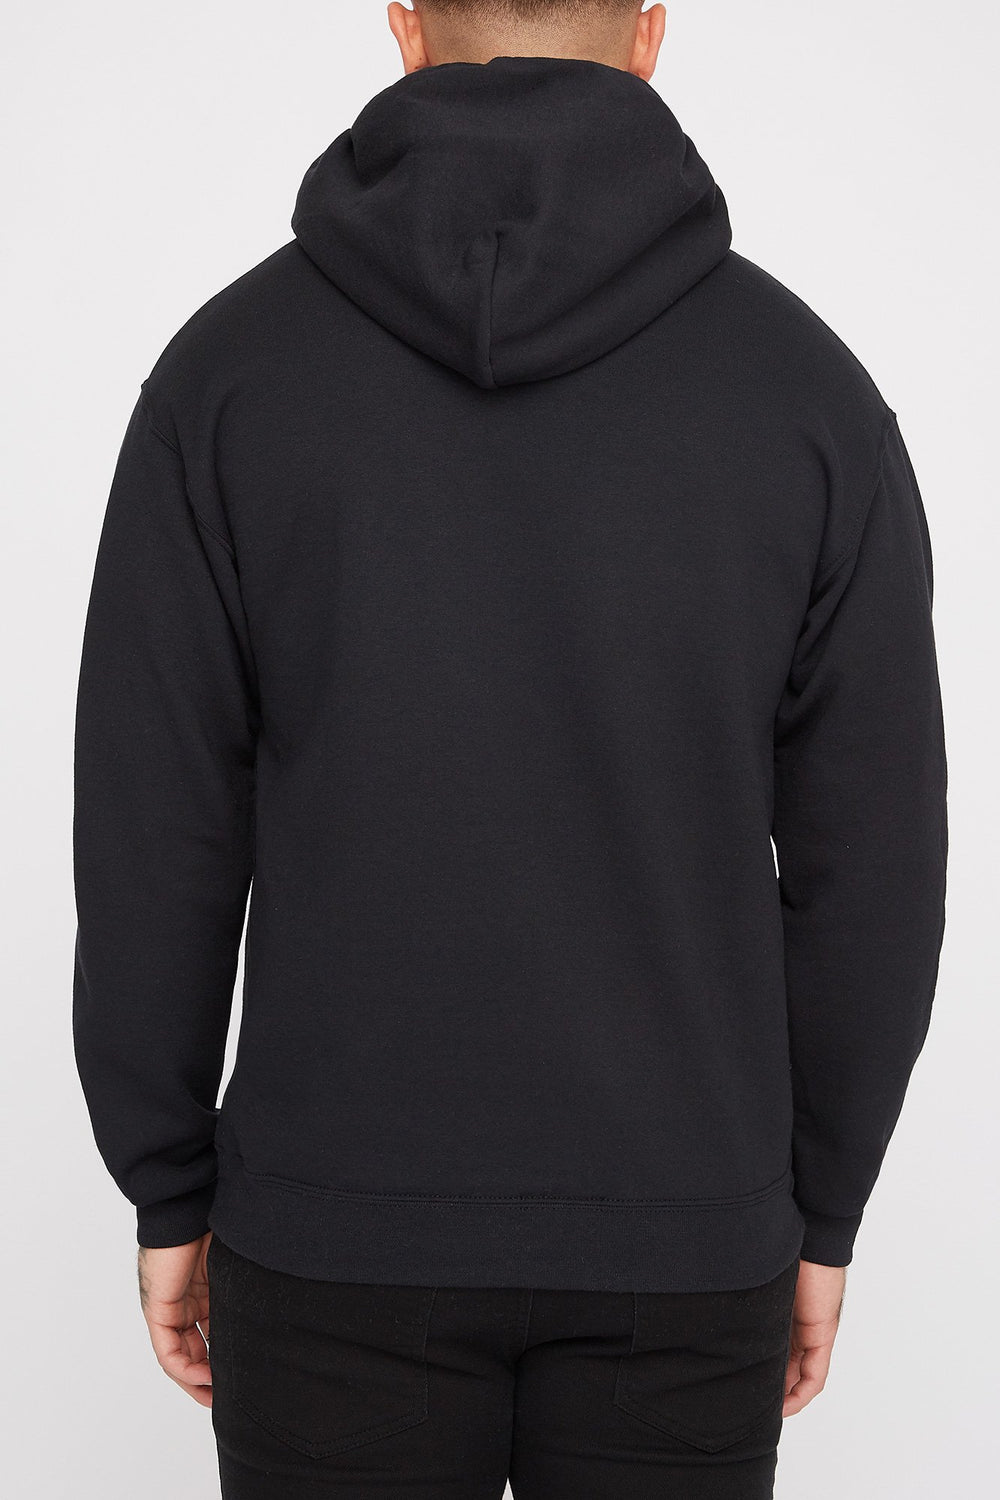 Mens Black Thrasher Magazine Hoodie Black